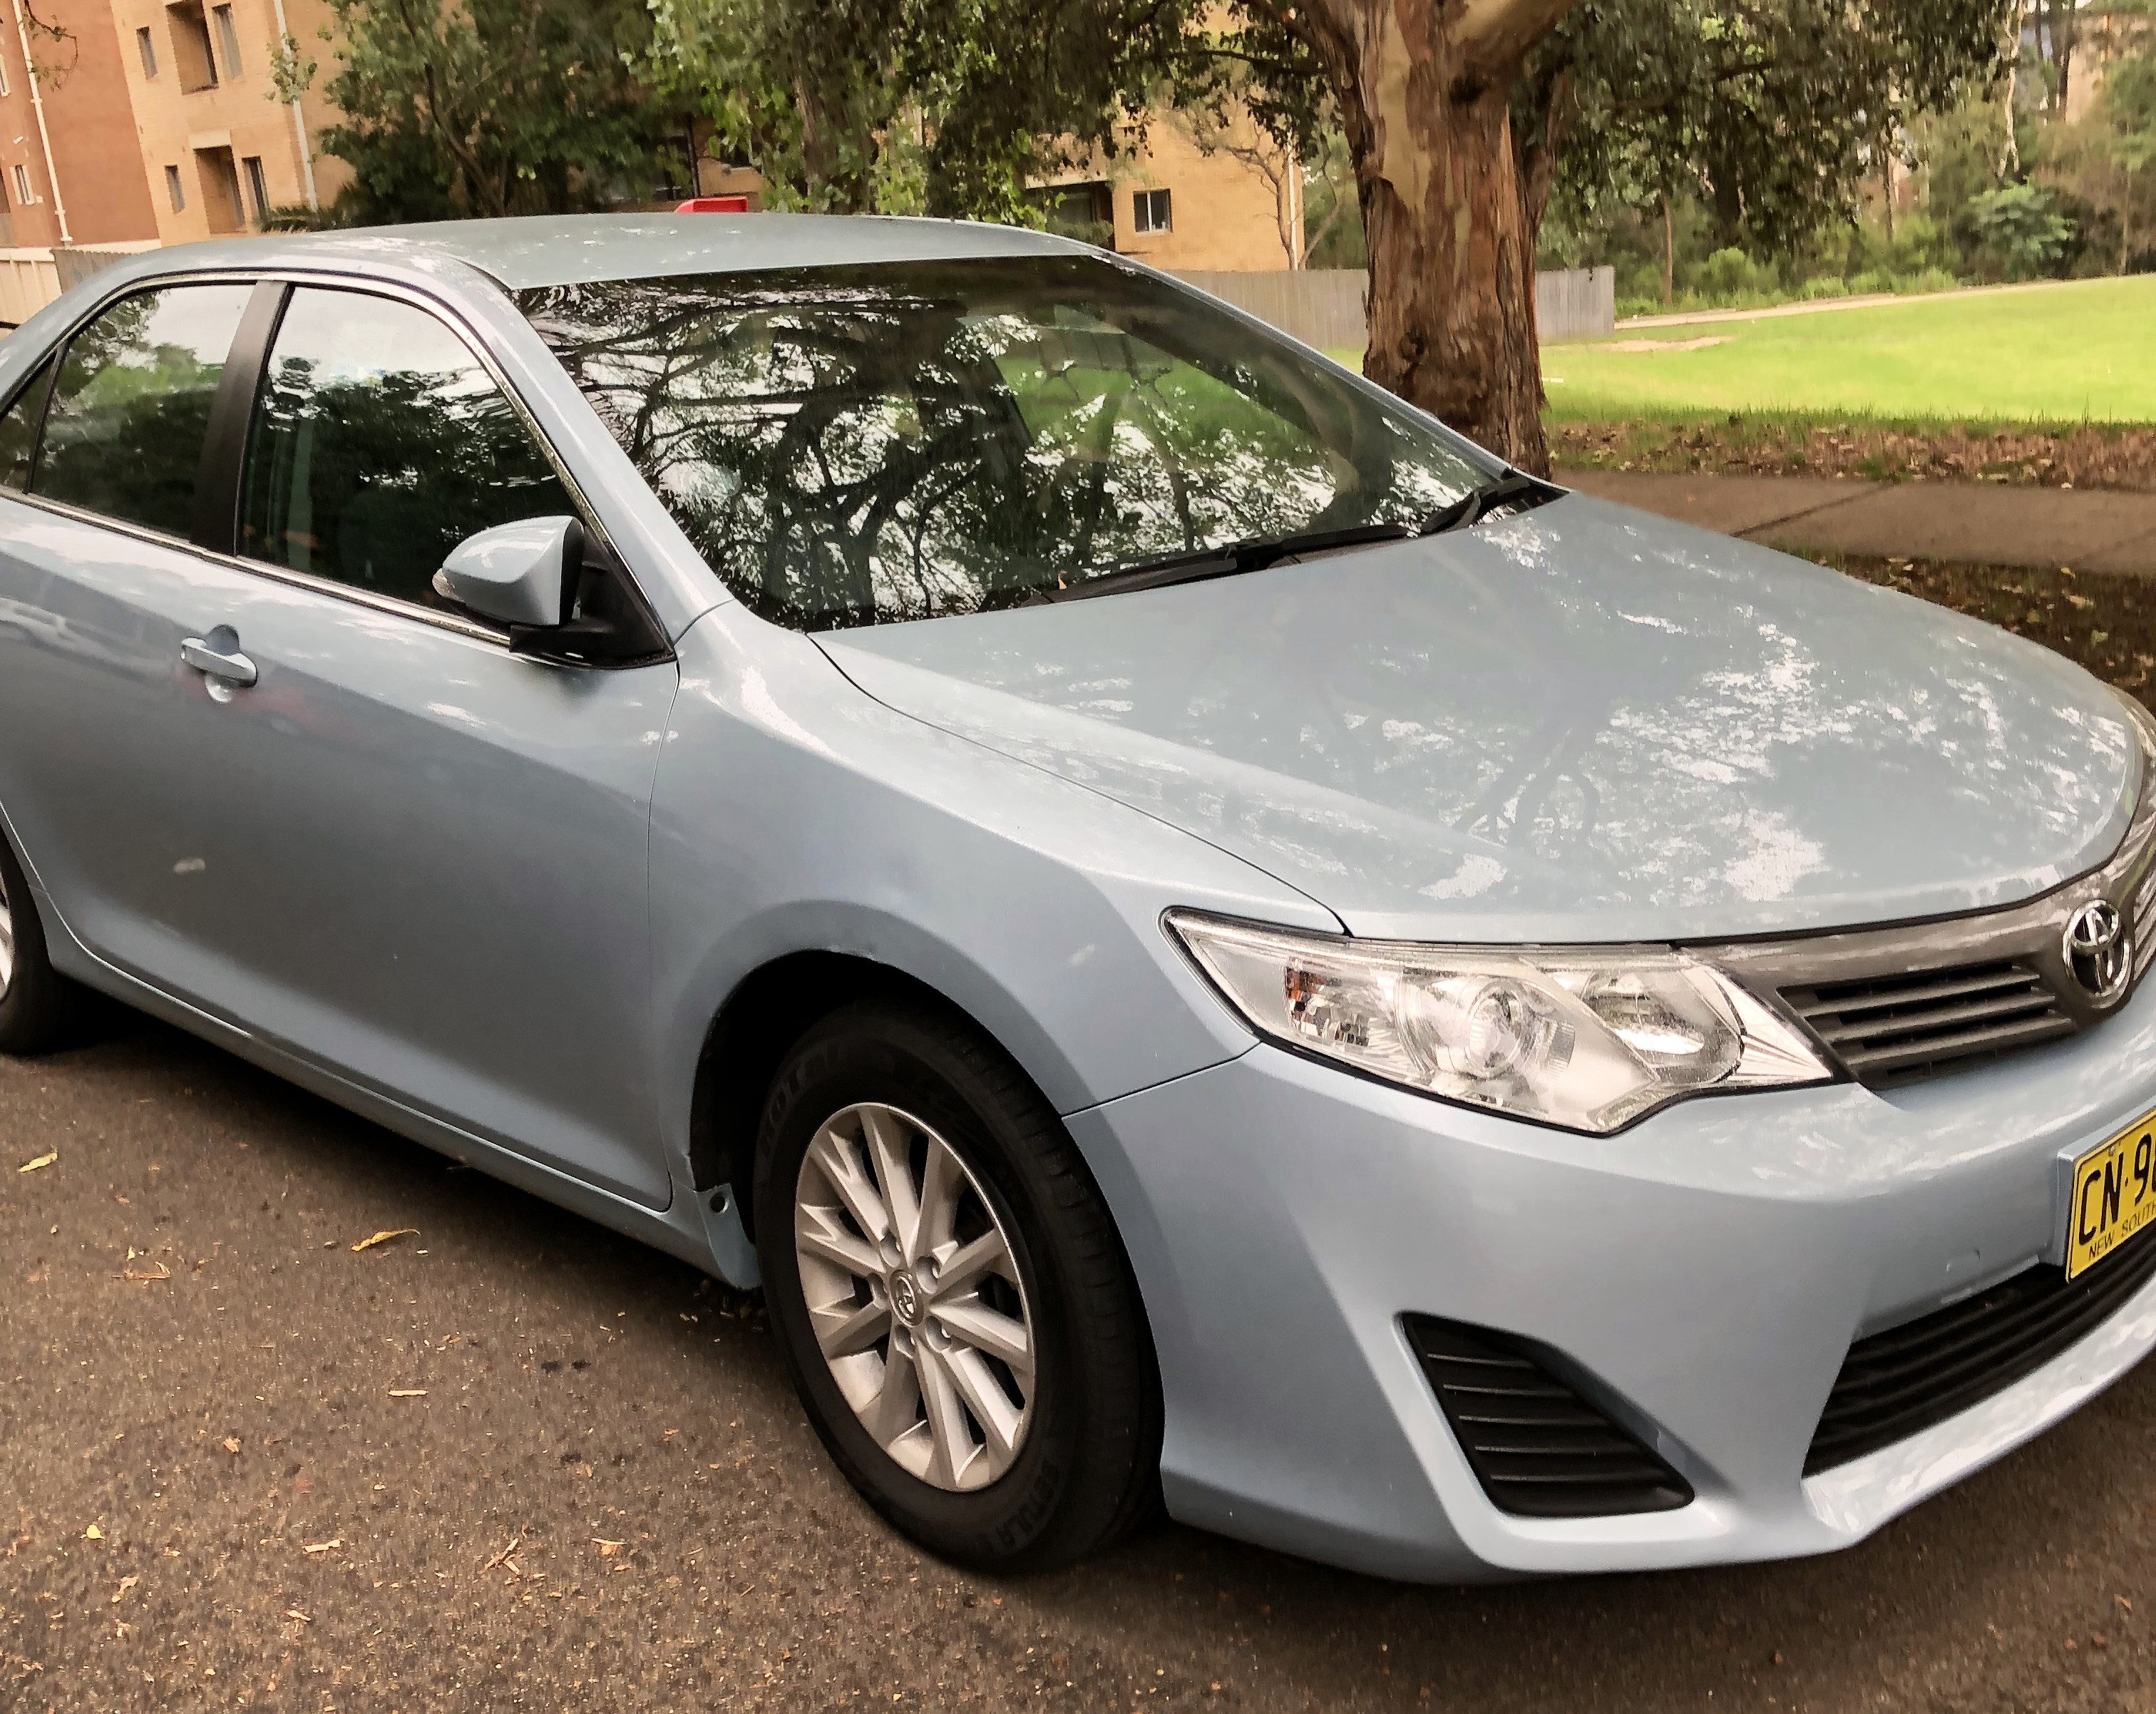 Picture of Devendra's 2014 Toyota Camry